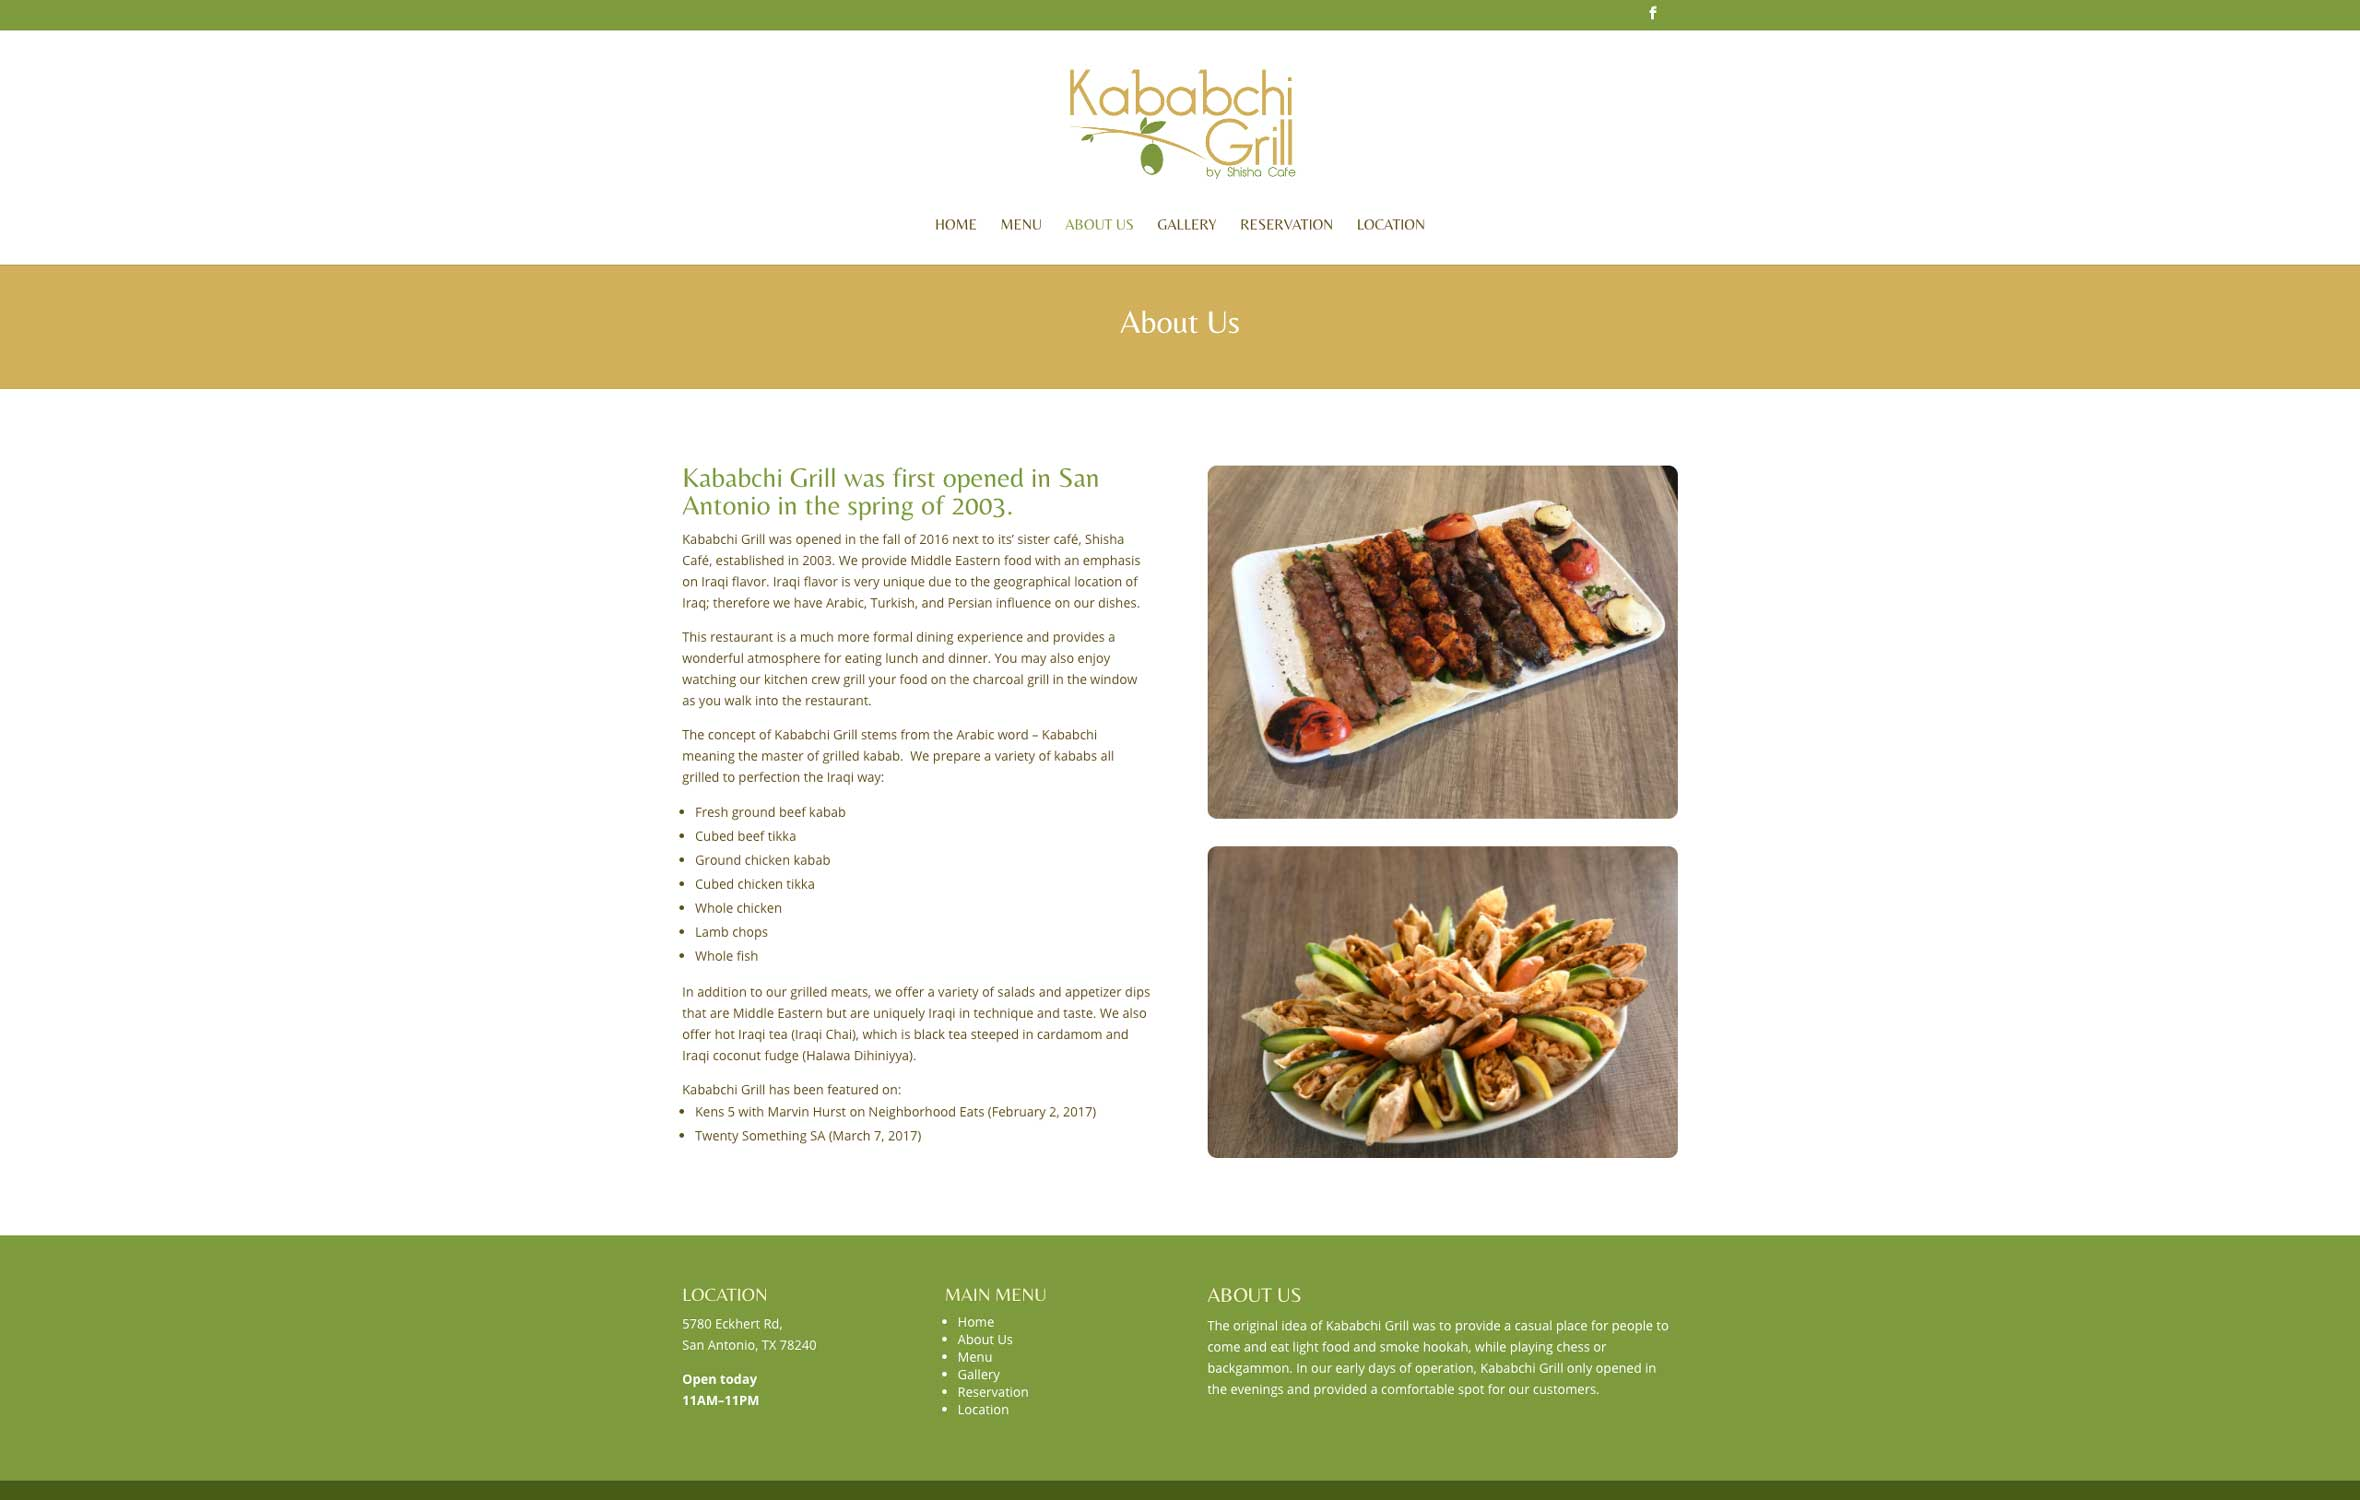 kababchi-grill-about-us-webpage